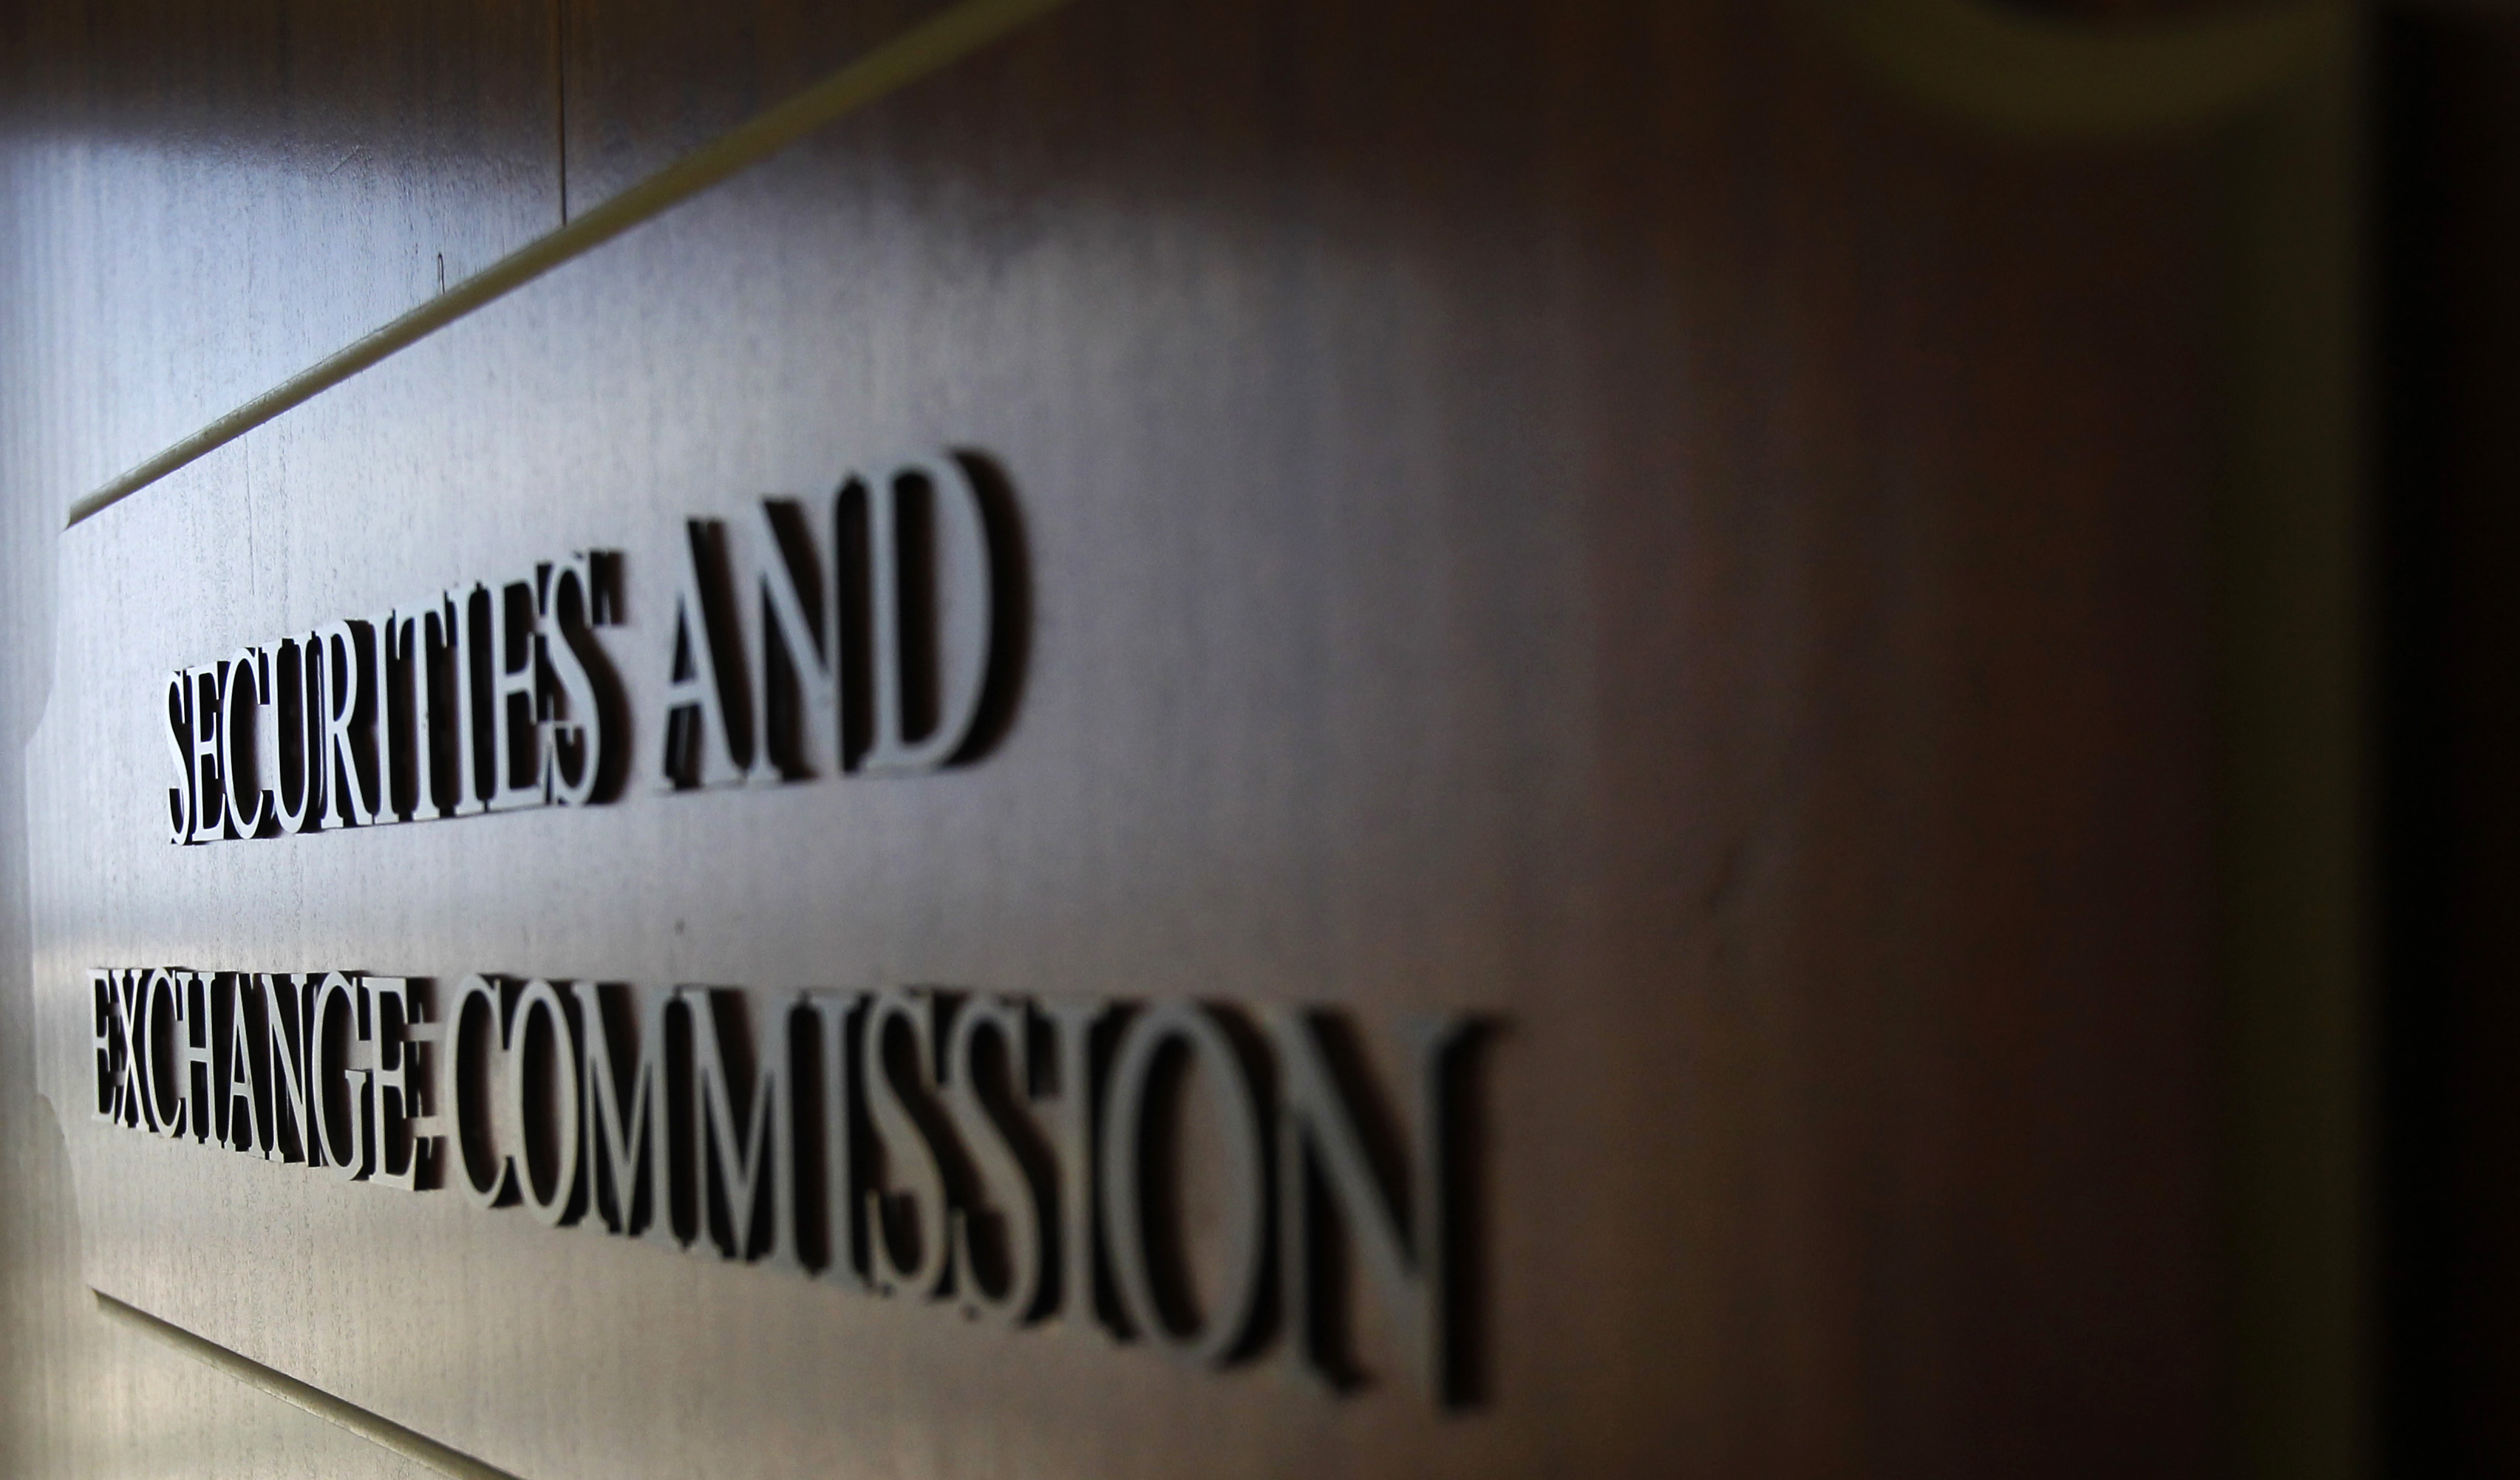 A sign for the Securities and Exchange Commission (SEC) is pictured in the foyer of the Fort Worth Regional Office in Fort Worth, Texas June 28, 2012. Picture taken June 28, 2012. To match Feature SEC-FORTWORTH/  REUTERS/Mike Stone (UNITED STATES - Tags: BUSINESS POLITICS)